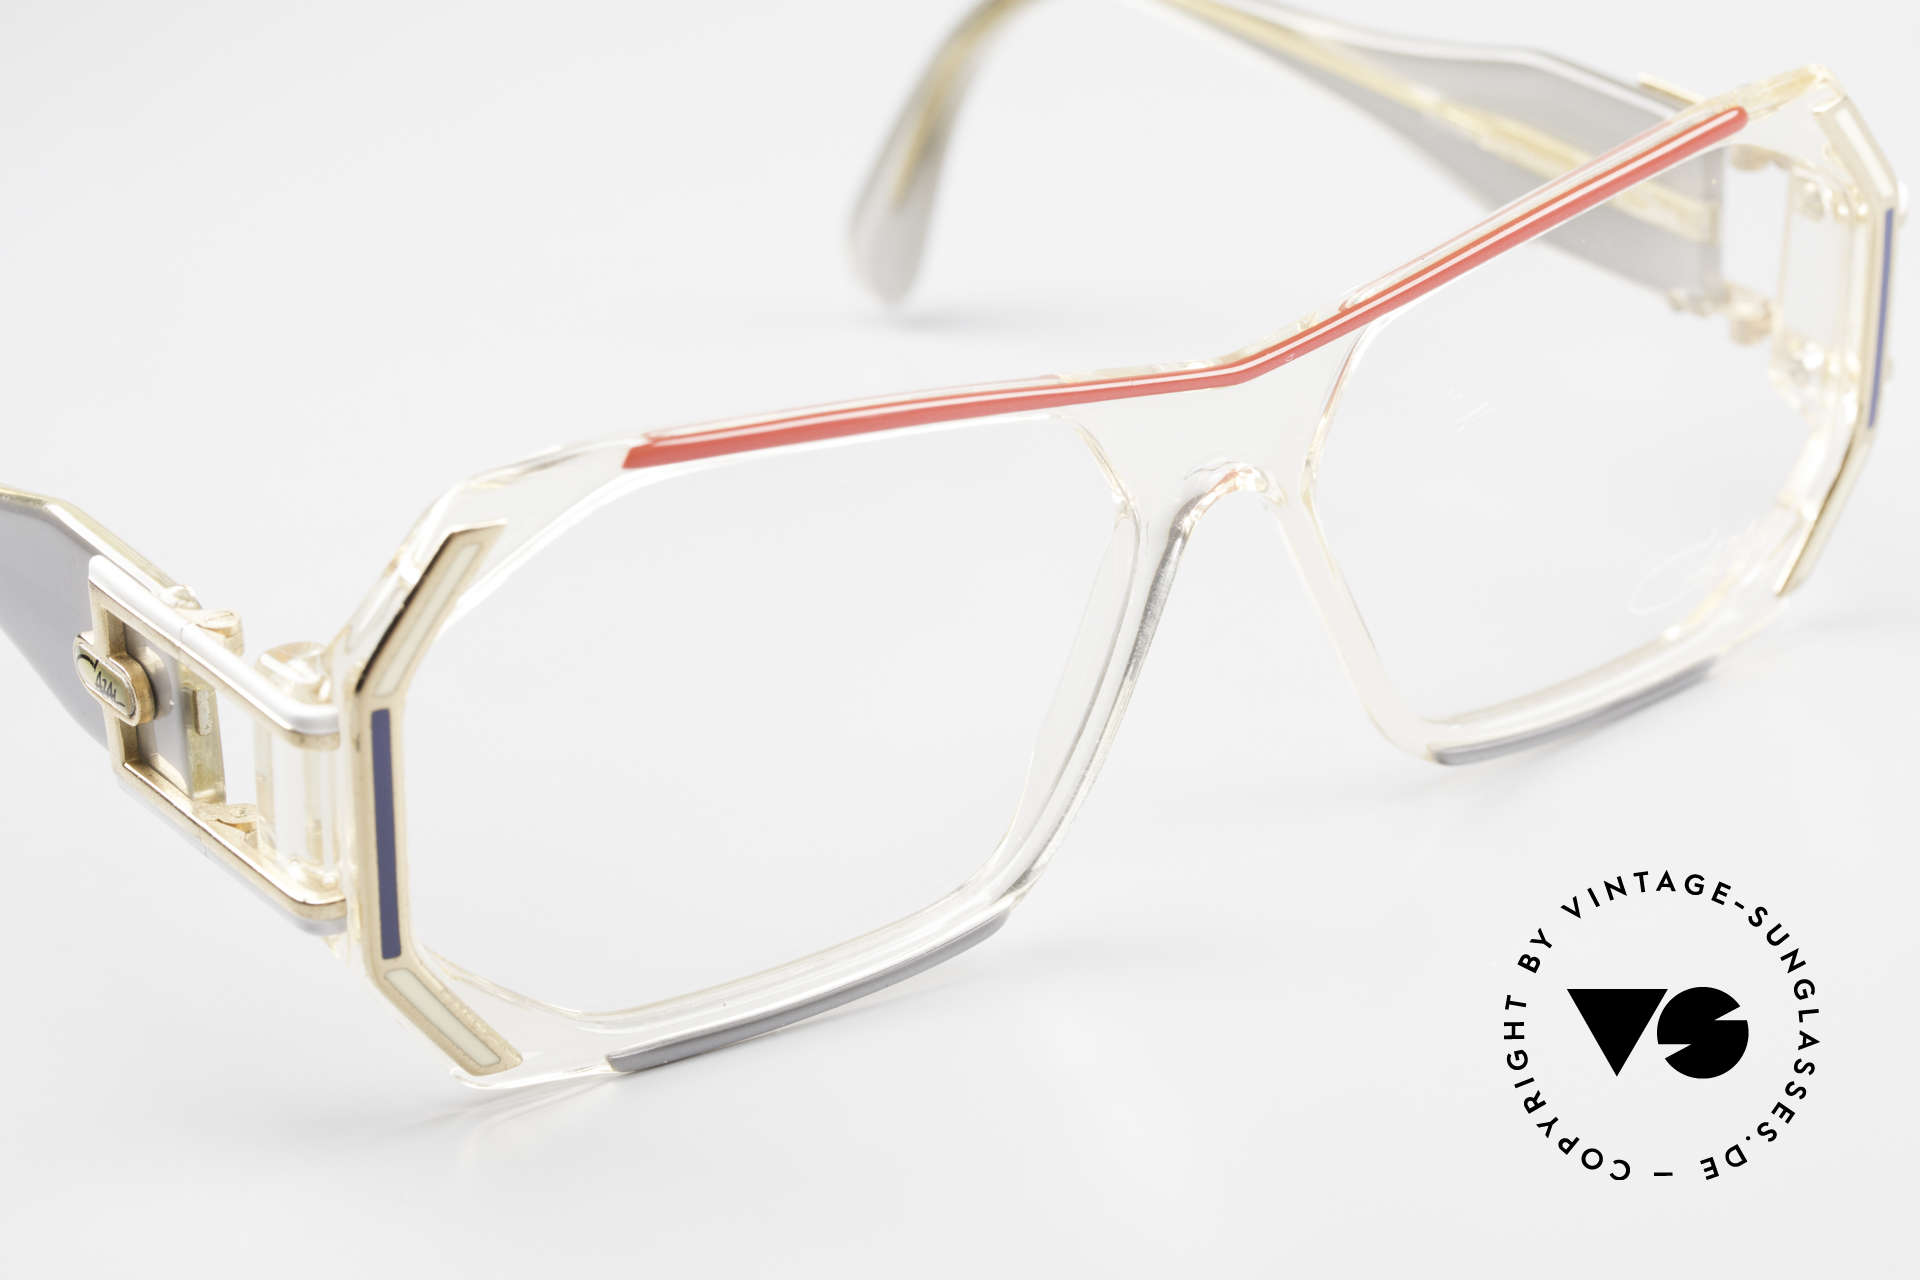 Cazal 182 80's HipHop Old School Frame, orig. demo lenses should be replaced with prescriptions, Made for Men and Women